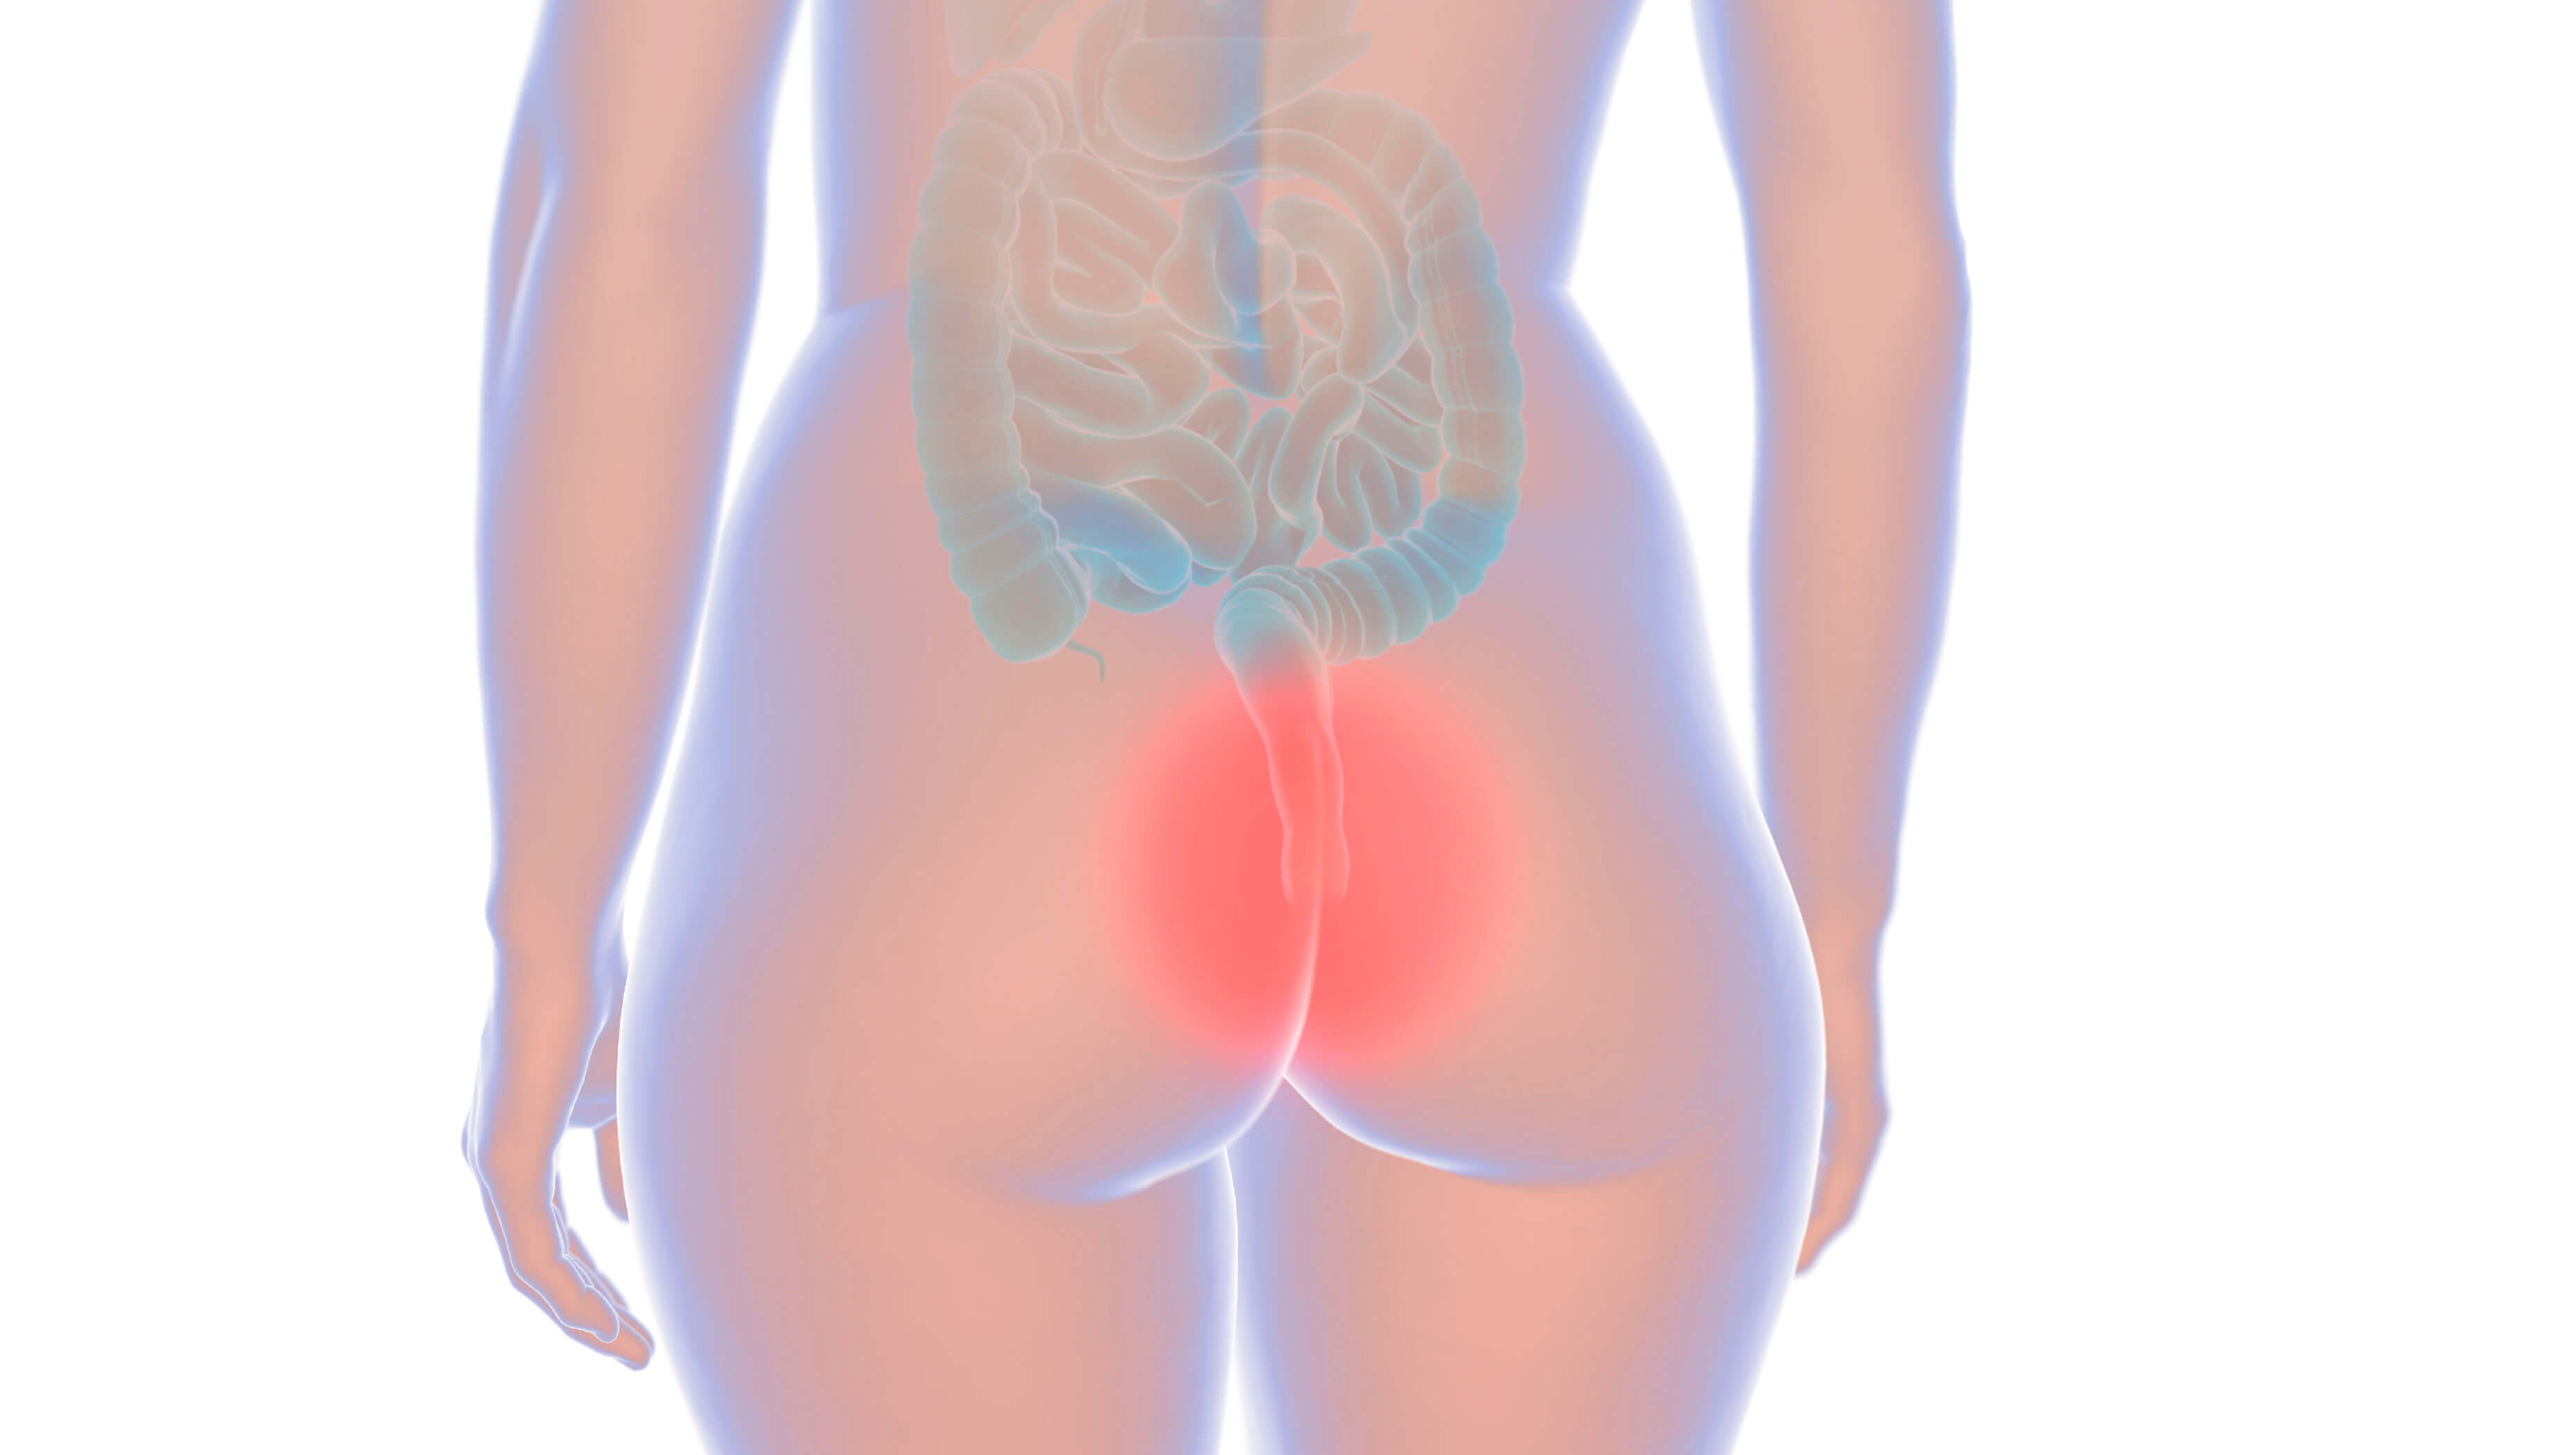 symptoms of piles near the rectum